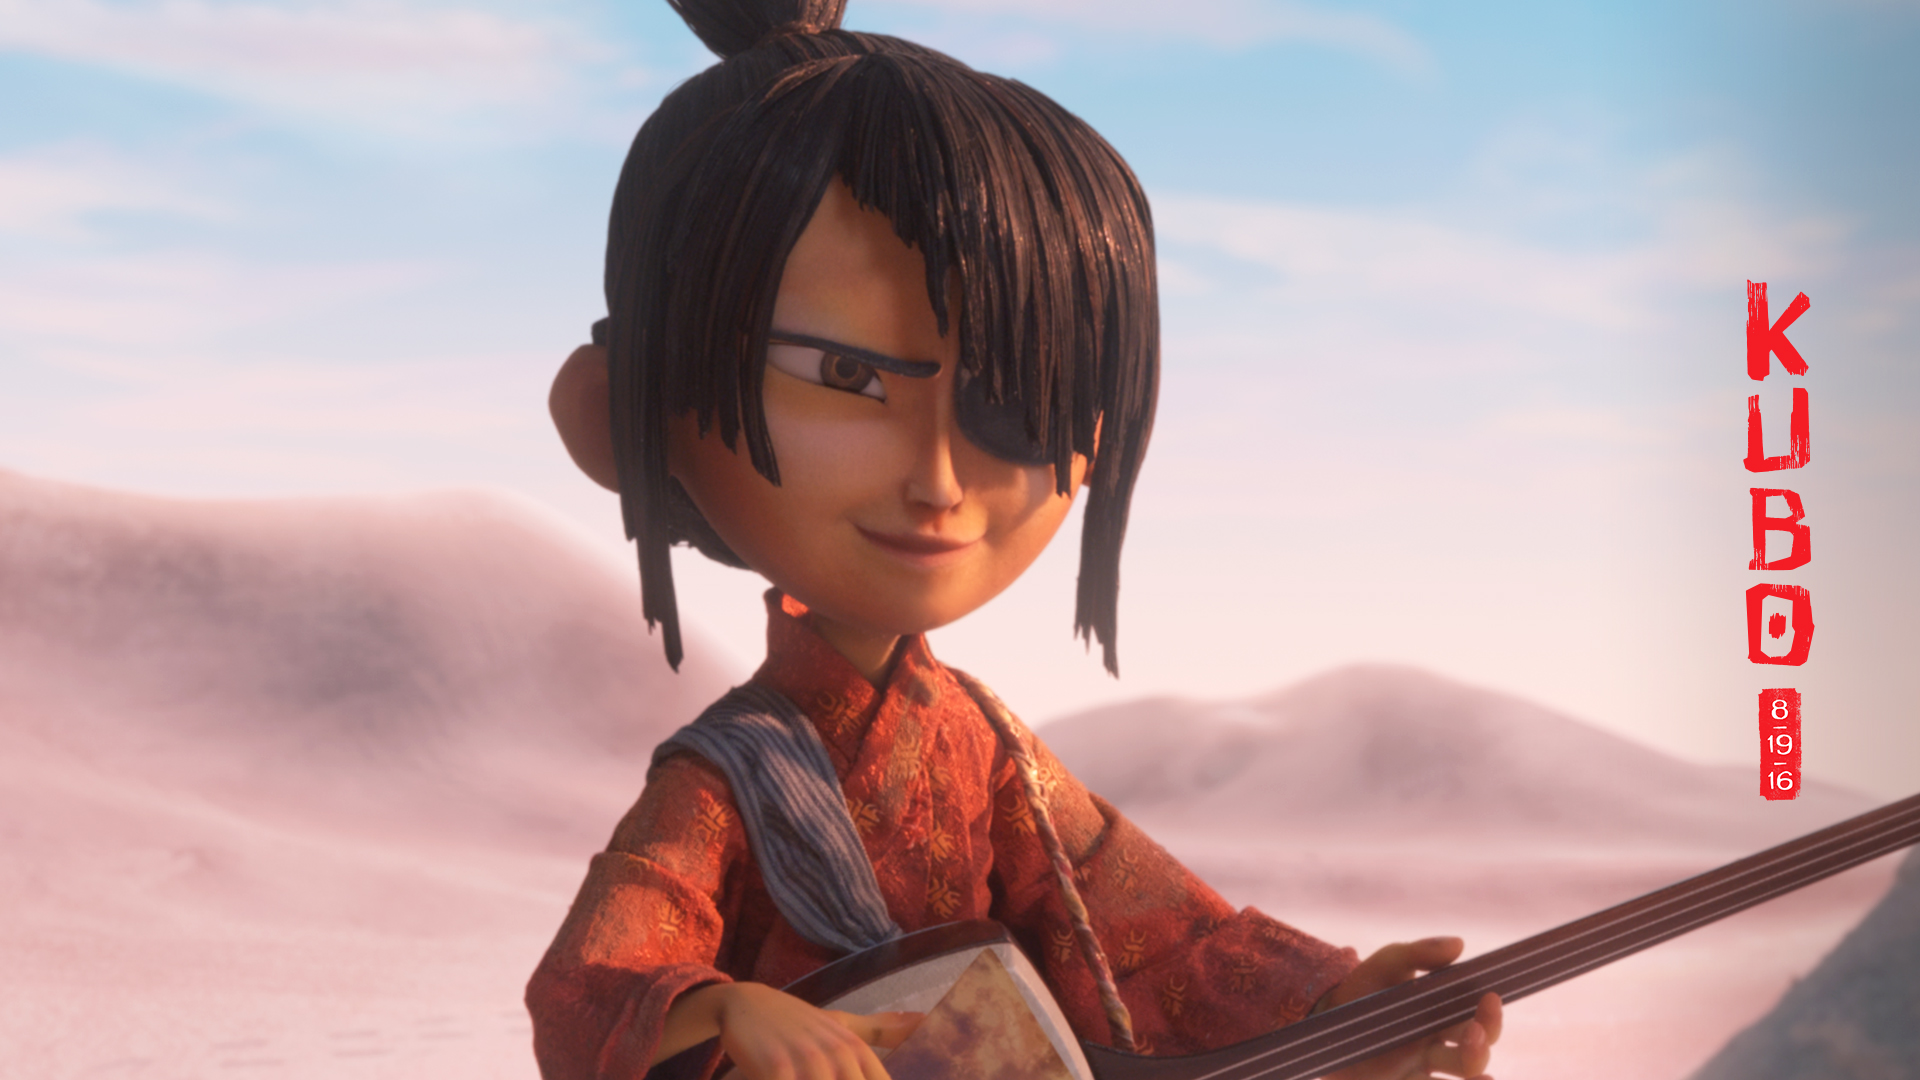 Animation... ou prise de vues réelles ? Kubo_and_the_Two_Strings_Wallpapers_1920x1080-2